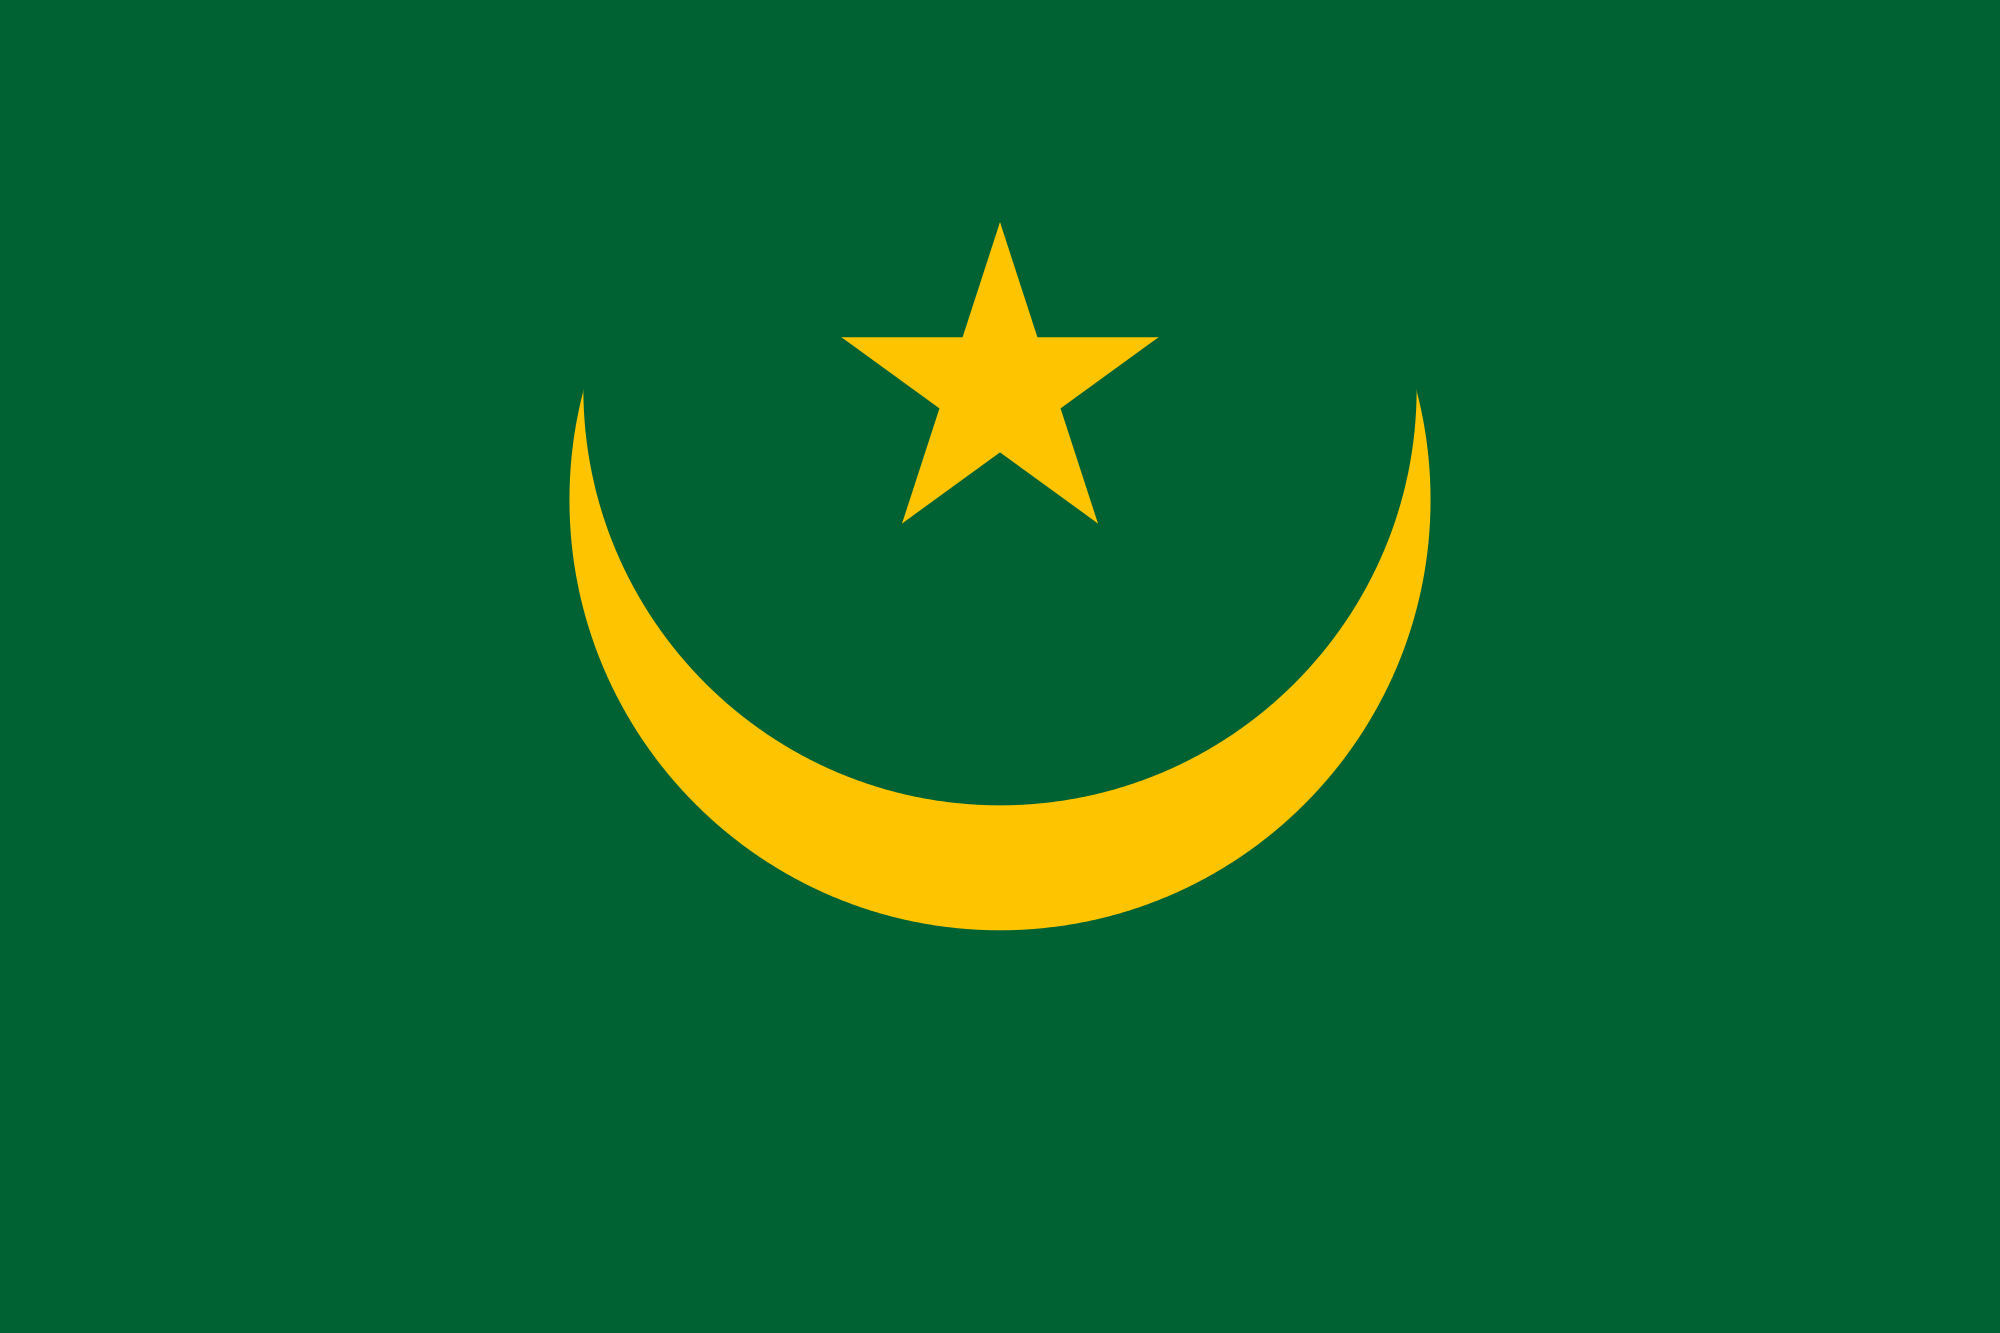 Mauritania Flag colors meaning & history of Mauritania Flag